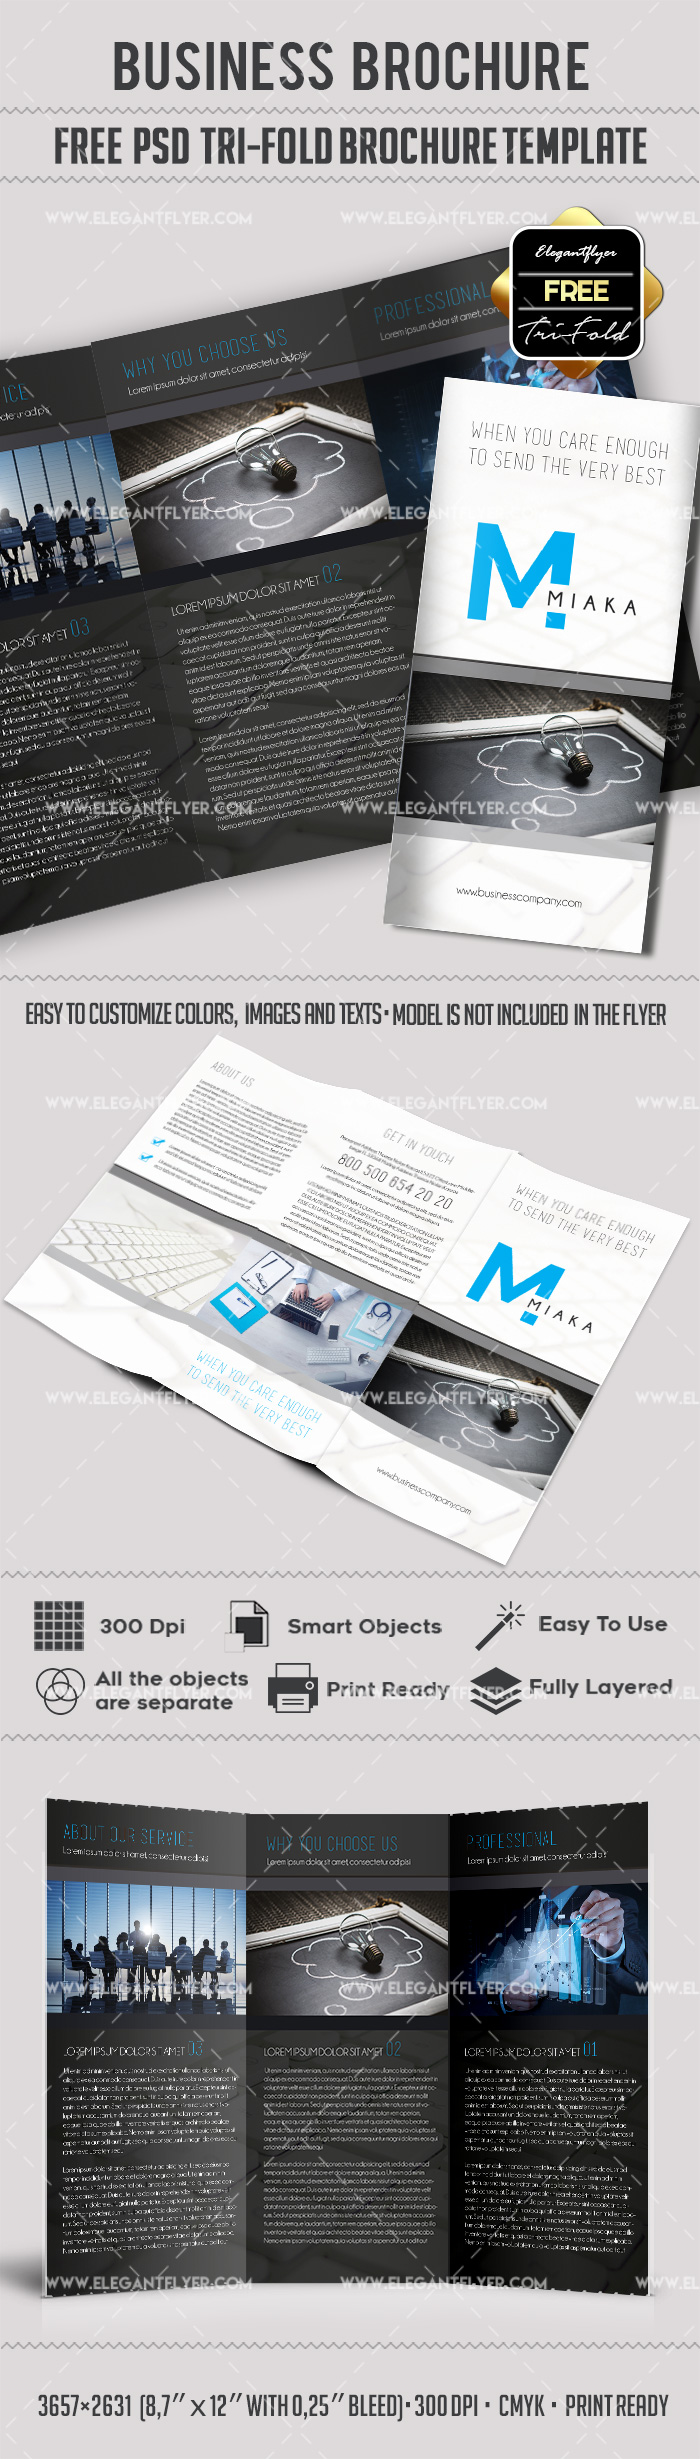 tri fold brochures templates free - tri fold brochure templates free download by elegantflyer